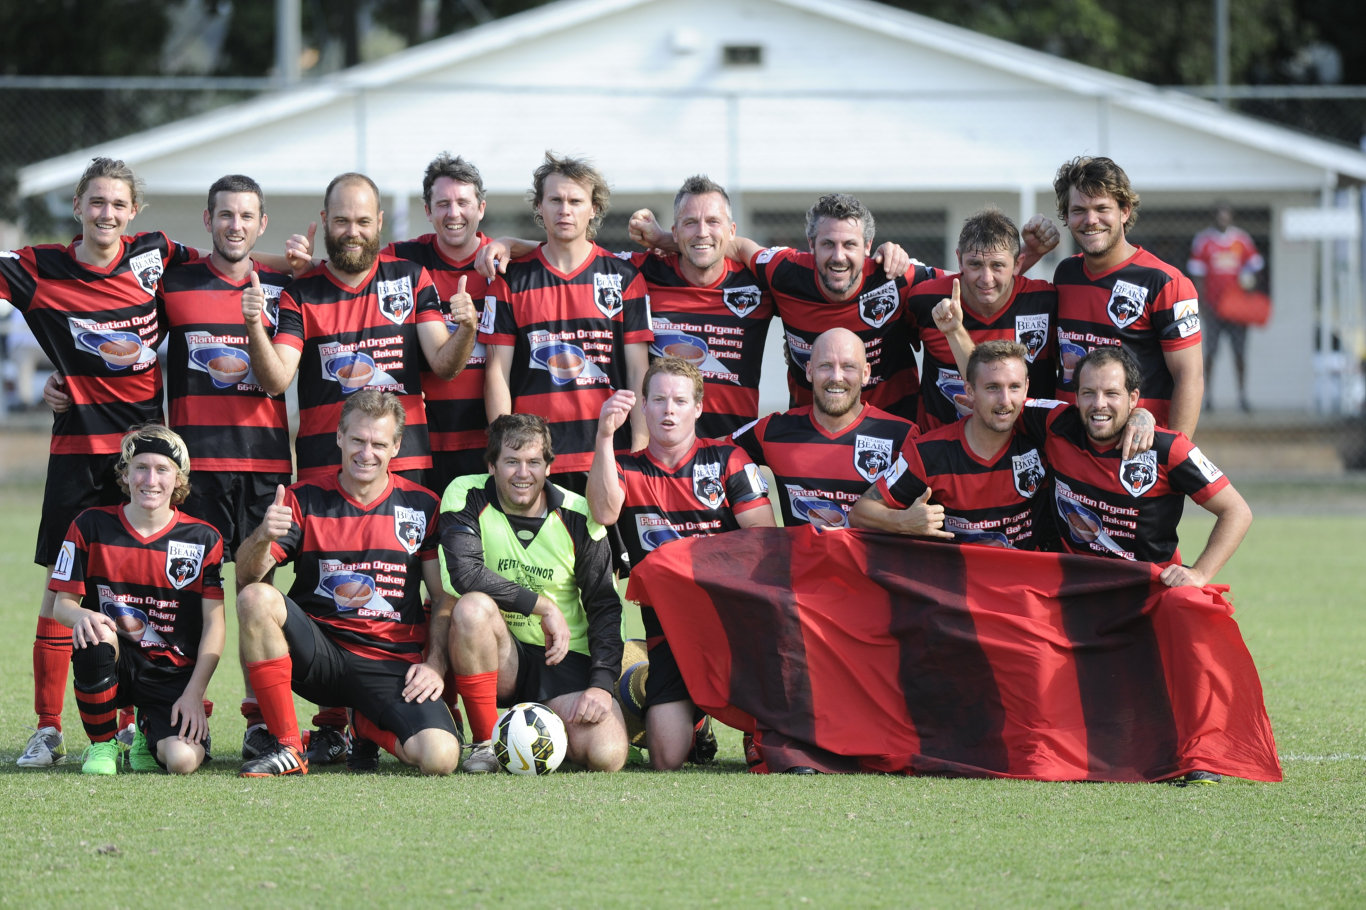 Tucabia-Wooli Bears (renamed Yuraygir Bears in 2016) won the North Coast Football 3rd Division grand final against Maclean Bobcats at Rushforth Park South Grafton on Saturday, 5th September, 2015. Several members of the team are Minnie Water residents with a close association to Mani Hart-Deville and his family. Photo Debrah Novak / The Daily Examiner